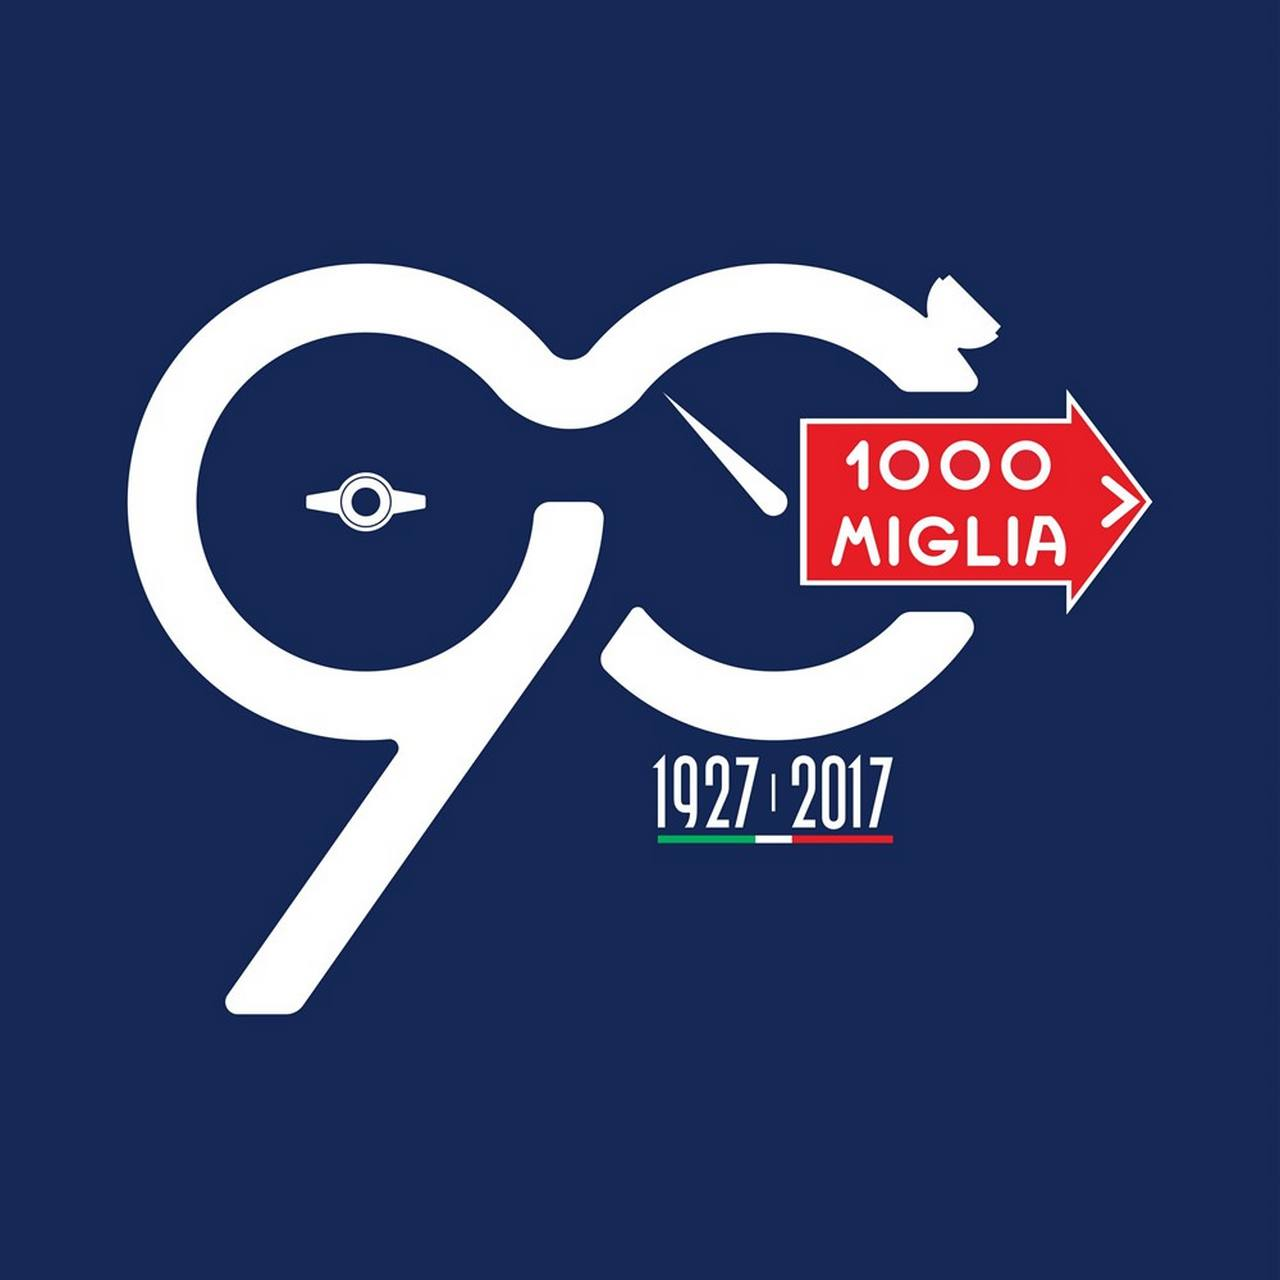 mille-miglia-2017-road-map-percorso-logo-trade-mark_0-1001